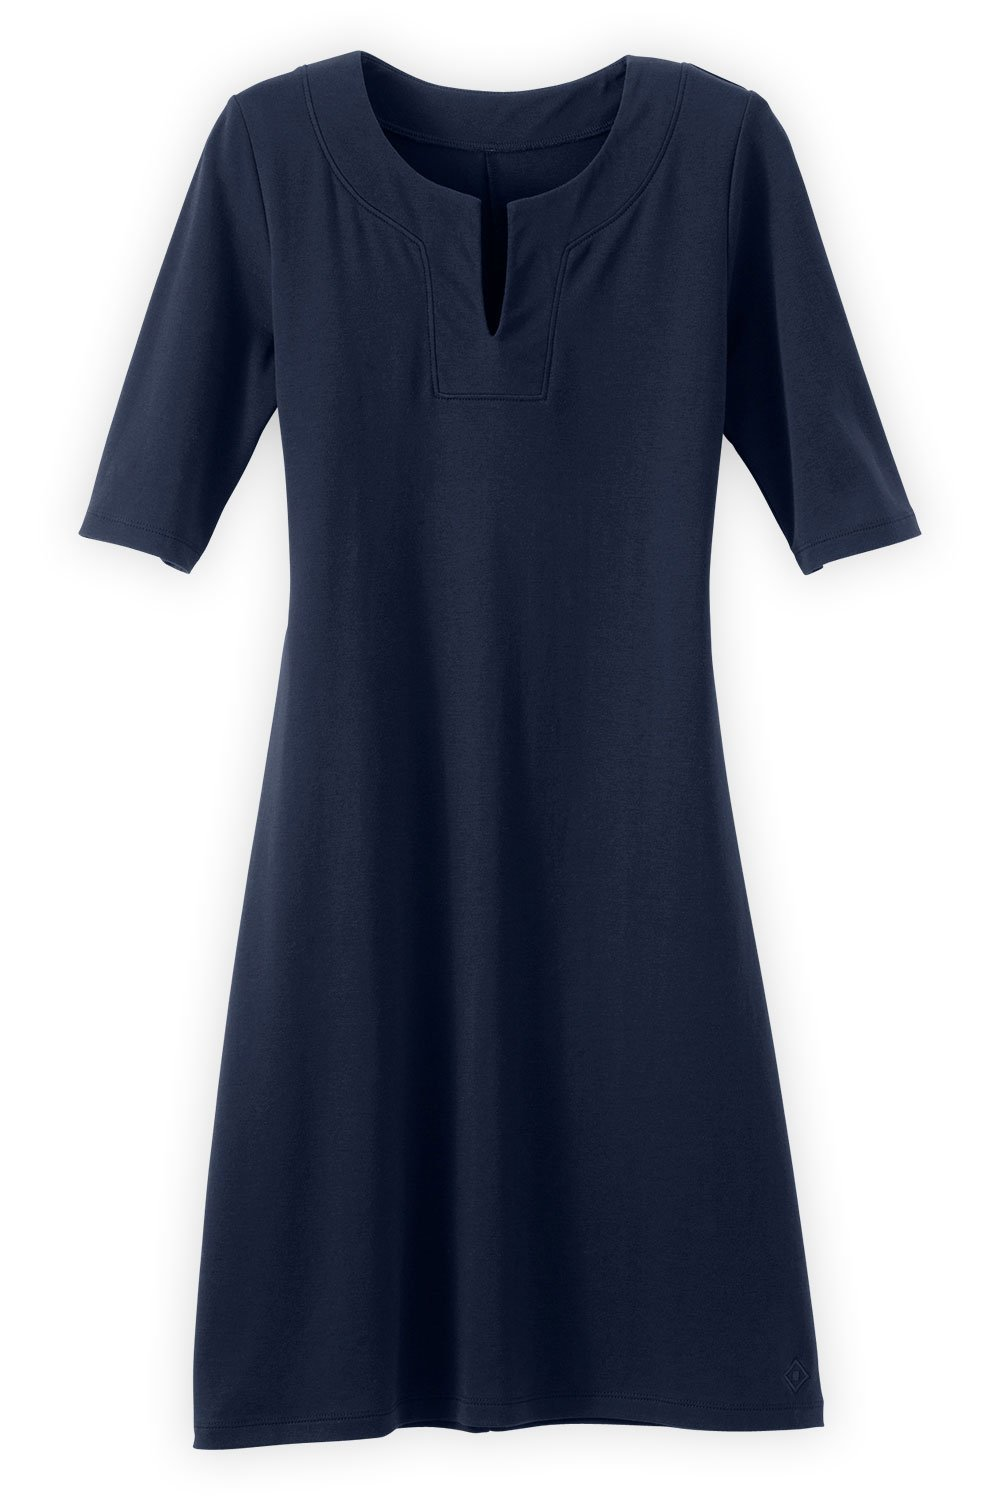 Fair Indigo Fair Trade Organic Split Neck Dress (M, Midnight Navy) by Fair Indigo